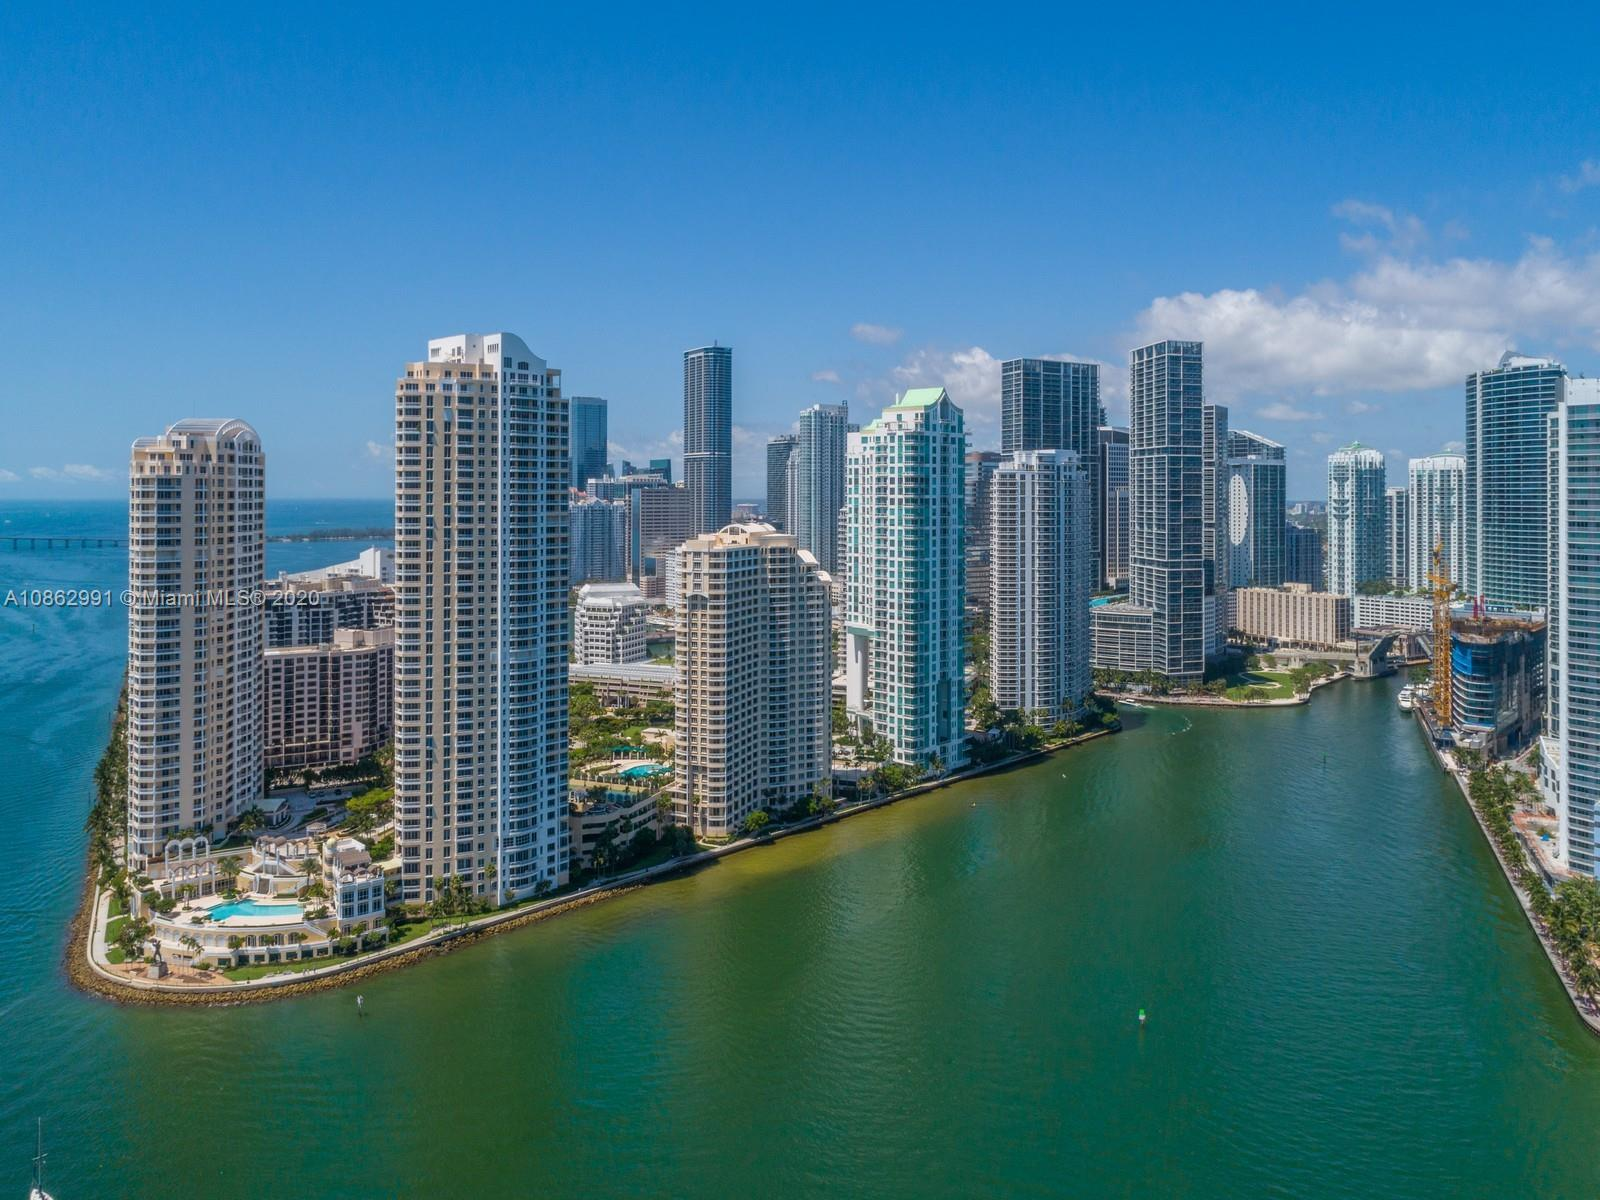 The apex of luxury begins here. Welcome inside a bright and white corner unit, located on the private island of Brickell Key in Asia. Here, buyers can indulge in the Miami lifestyle, where the sun touches every angle of this 4 bed 4.5 bath renovated home. Boasting unobstructed views of Biscayne Bay, with several full-size balconies, summer can be enjoyed with ample room for entertaining. Indoors, residents can experience high design and coastal style with a large open-floor plan featuring walk-through living & dining room, and bespoke gourmet kitchen by POLIFORM.  Italian wood flooring, 12ft. ceilings, automated curtains & shades by LUTRON, lighting by Kreon, doors by RIMADESIO, walk-in closets by ORNARE & designer spa-inspired baths. 5-star amenities, staff quarters, built-in home theater